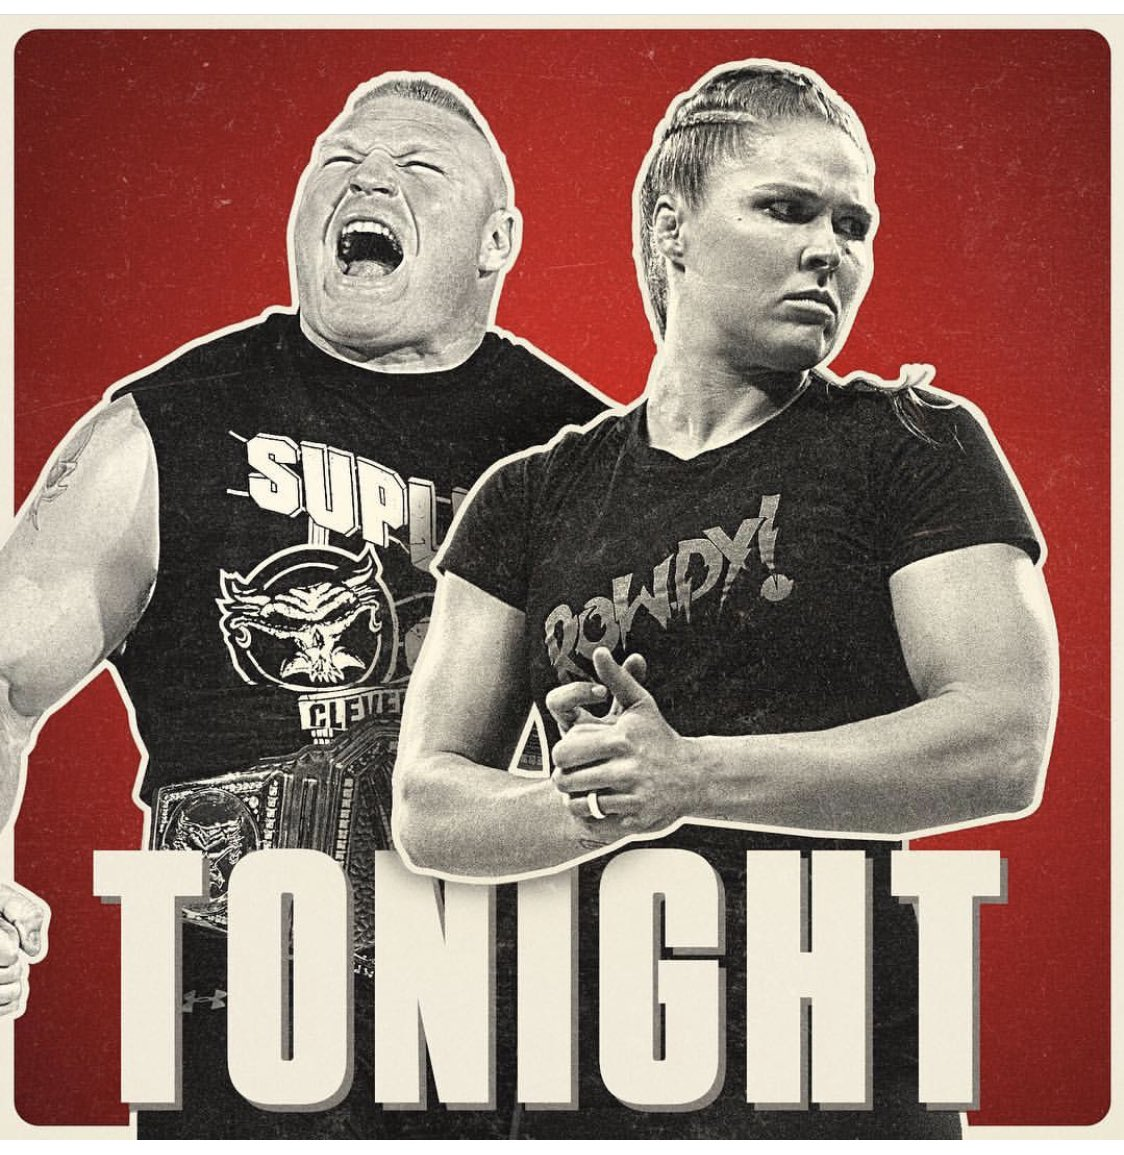 Don't miss Monday Night #RAW tonight on @usa_network!!!! The #BeastandtheBaddest are back!!!! https://t.co/gDnnGrs0MQ